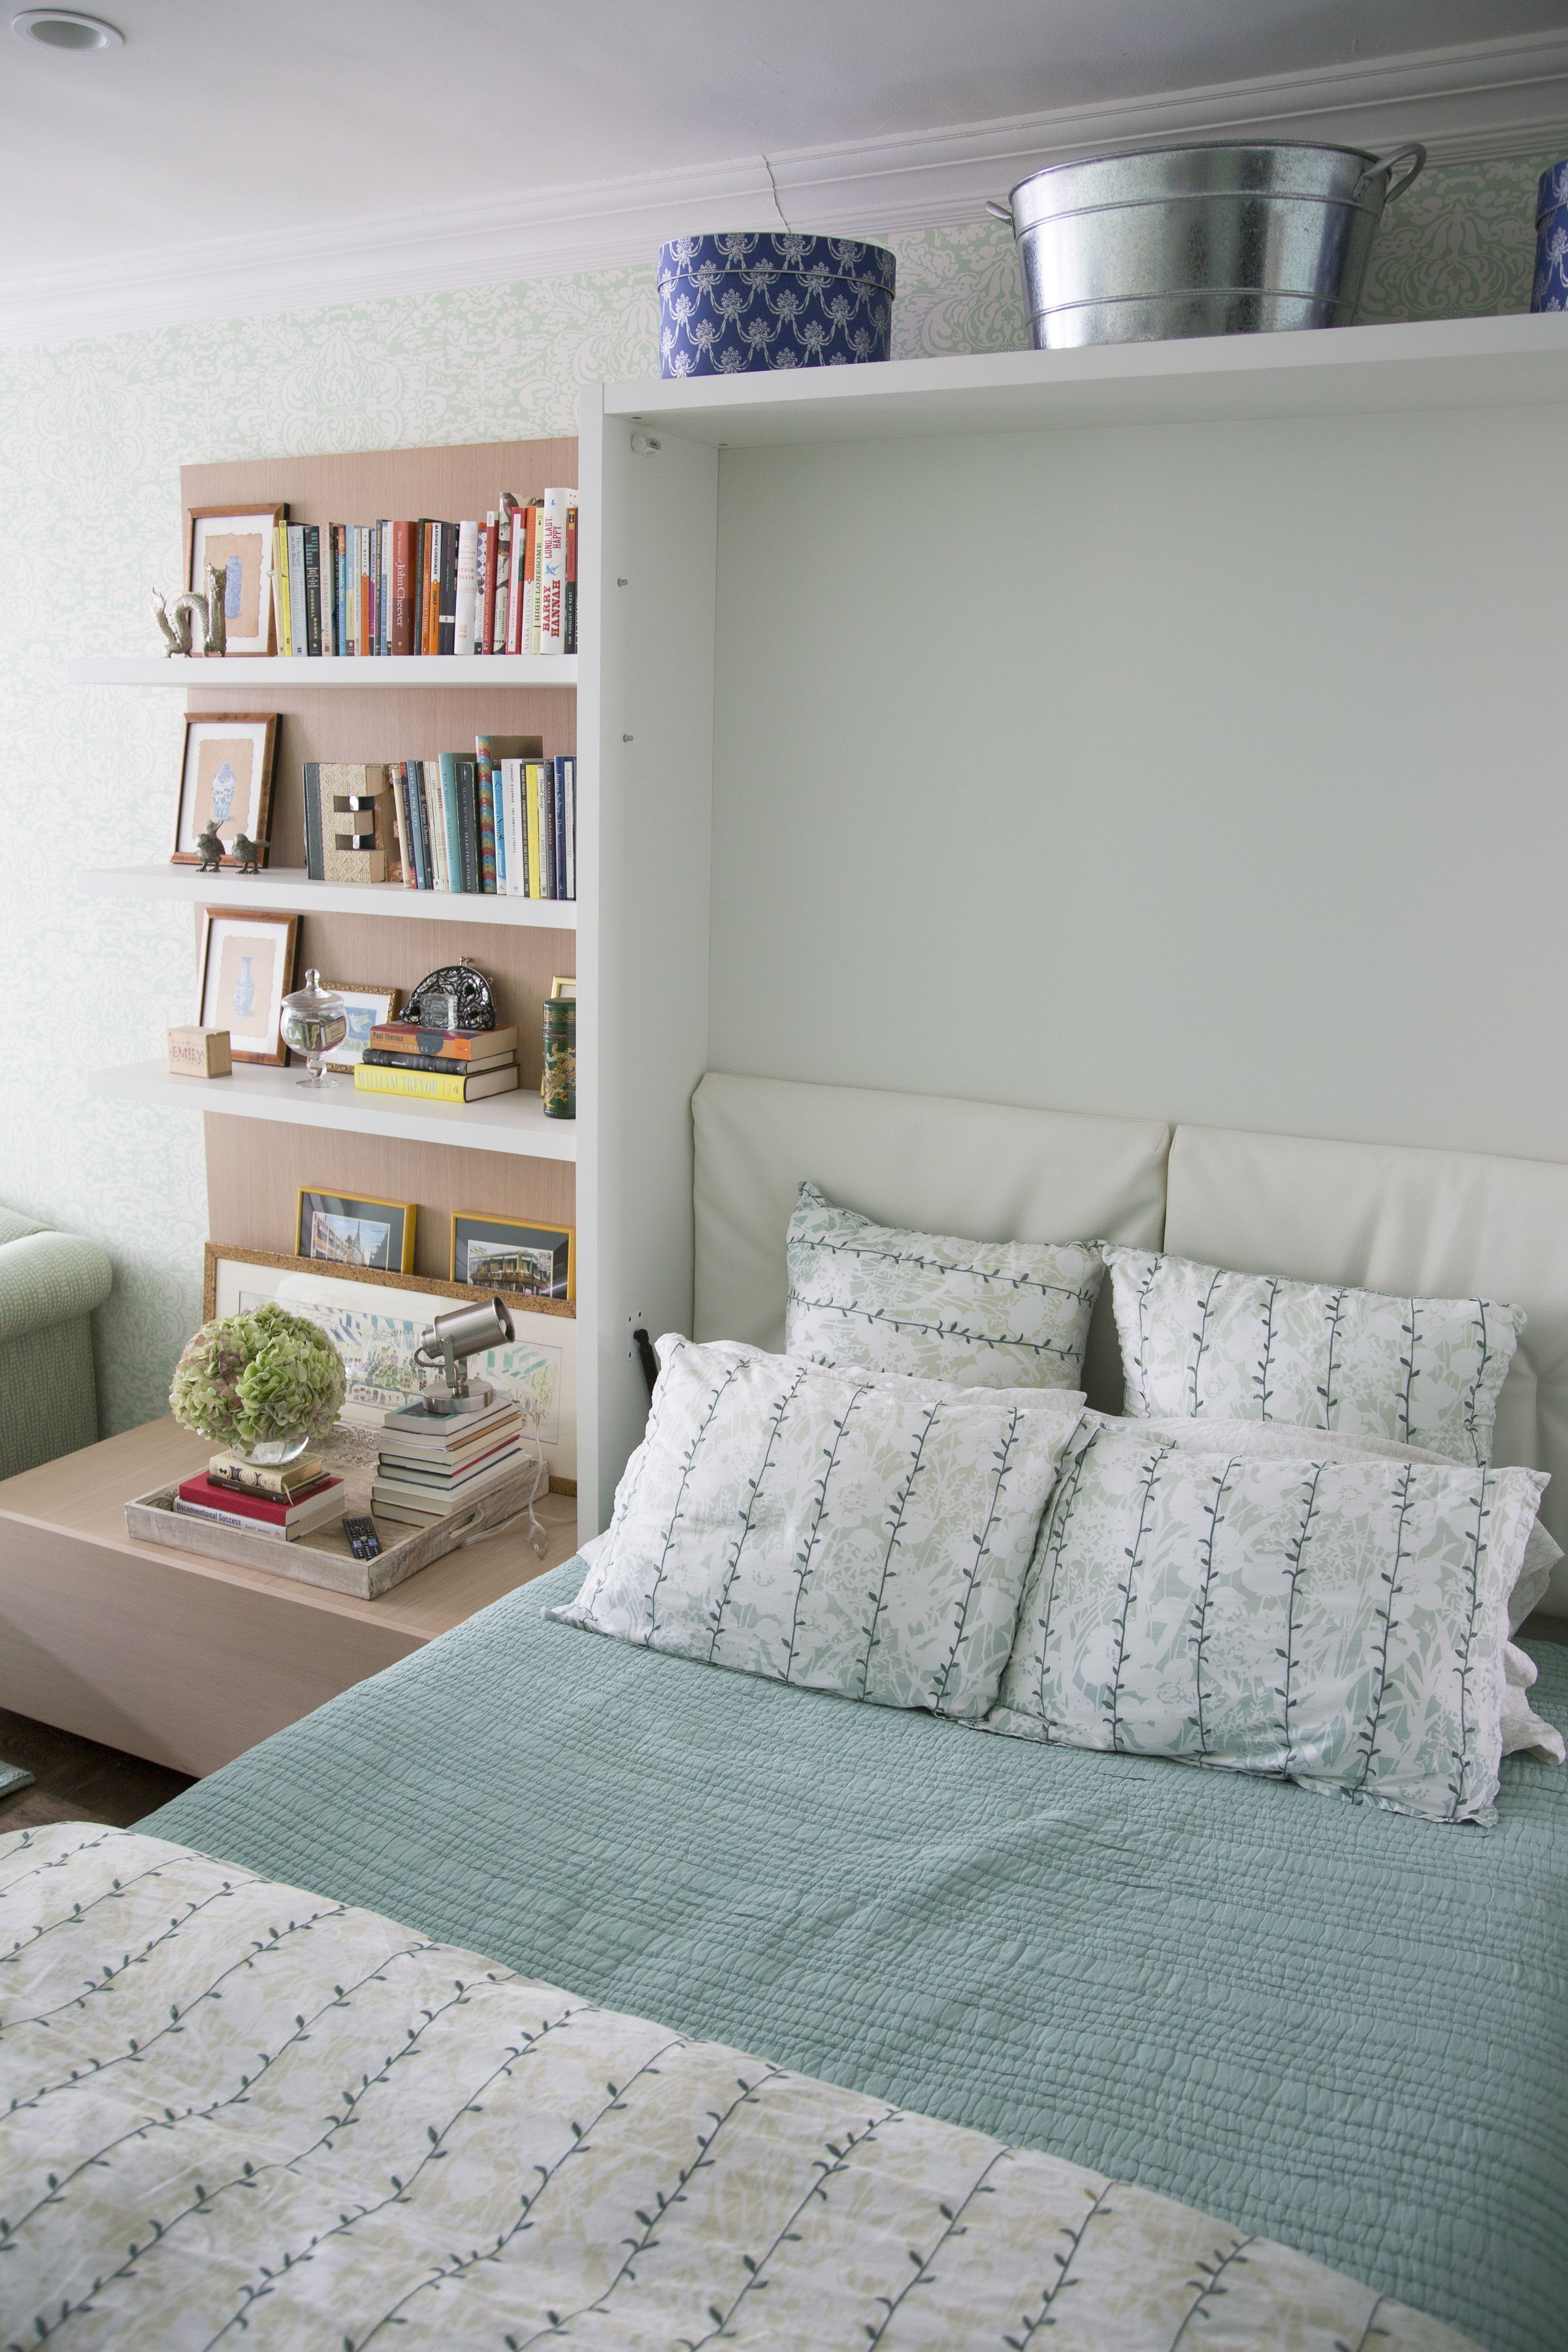 Expensive Looking Home Diys That Are Secretly Cheap Apartment Therapy Marketplace Murphy Bed Plans Murphy Bed Ikea Modern Murphy Beds